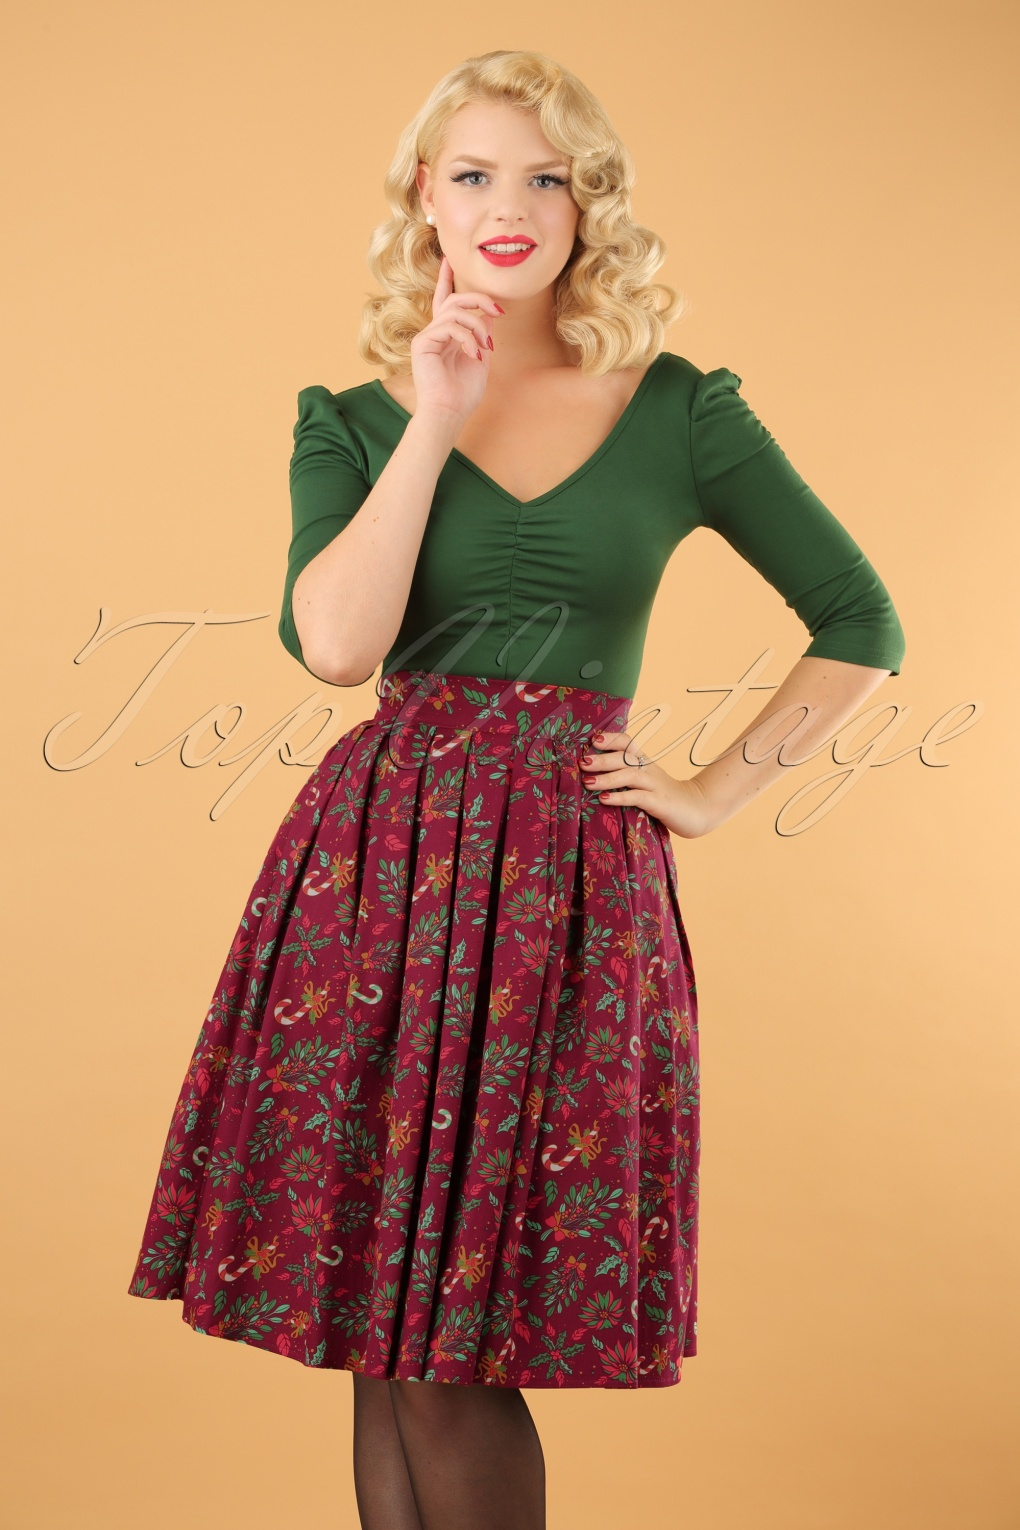 Retro Skirts: Vintage, Pencil, Circle, & Plus Sizes 50s Autumn Leaves Skirt in Burgundy £38.76 AT vintagedancer.com